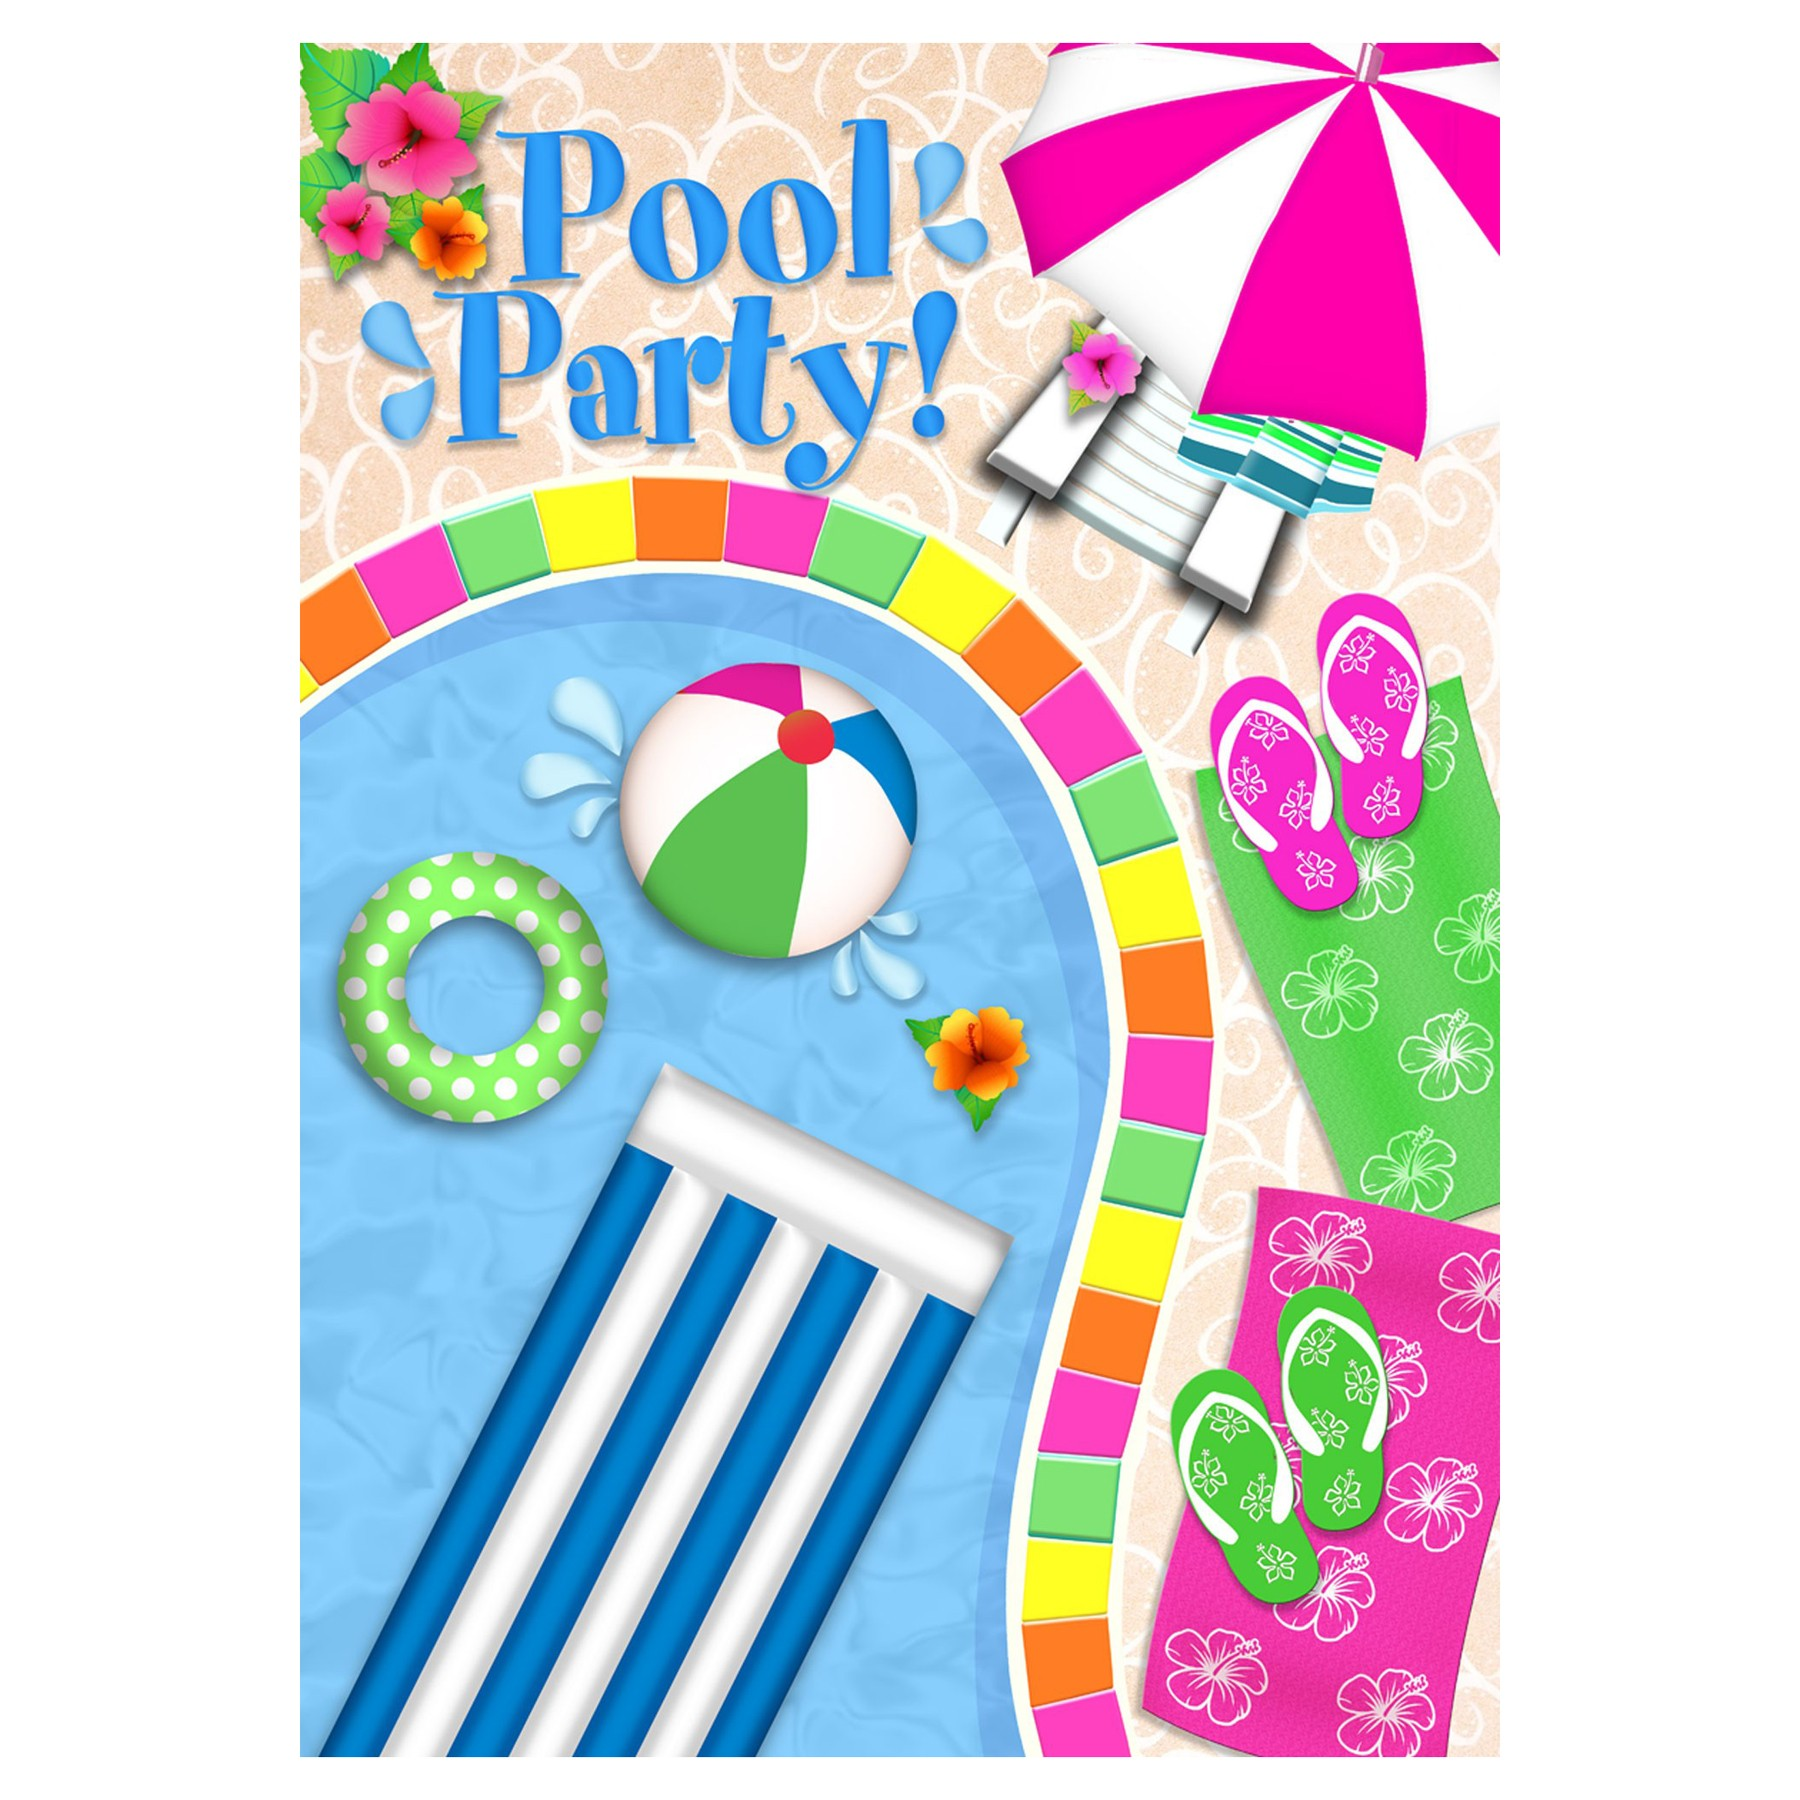 1800x1800 Pool Party Graphics Clipart